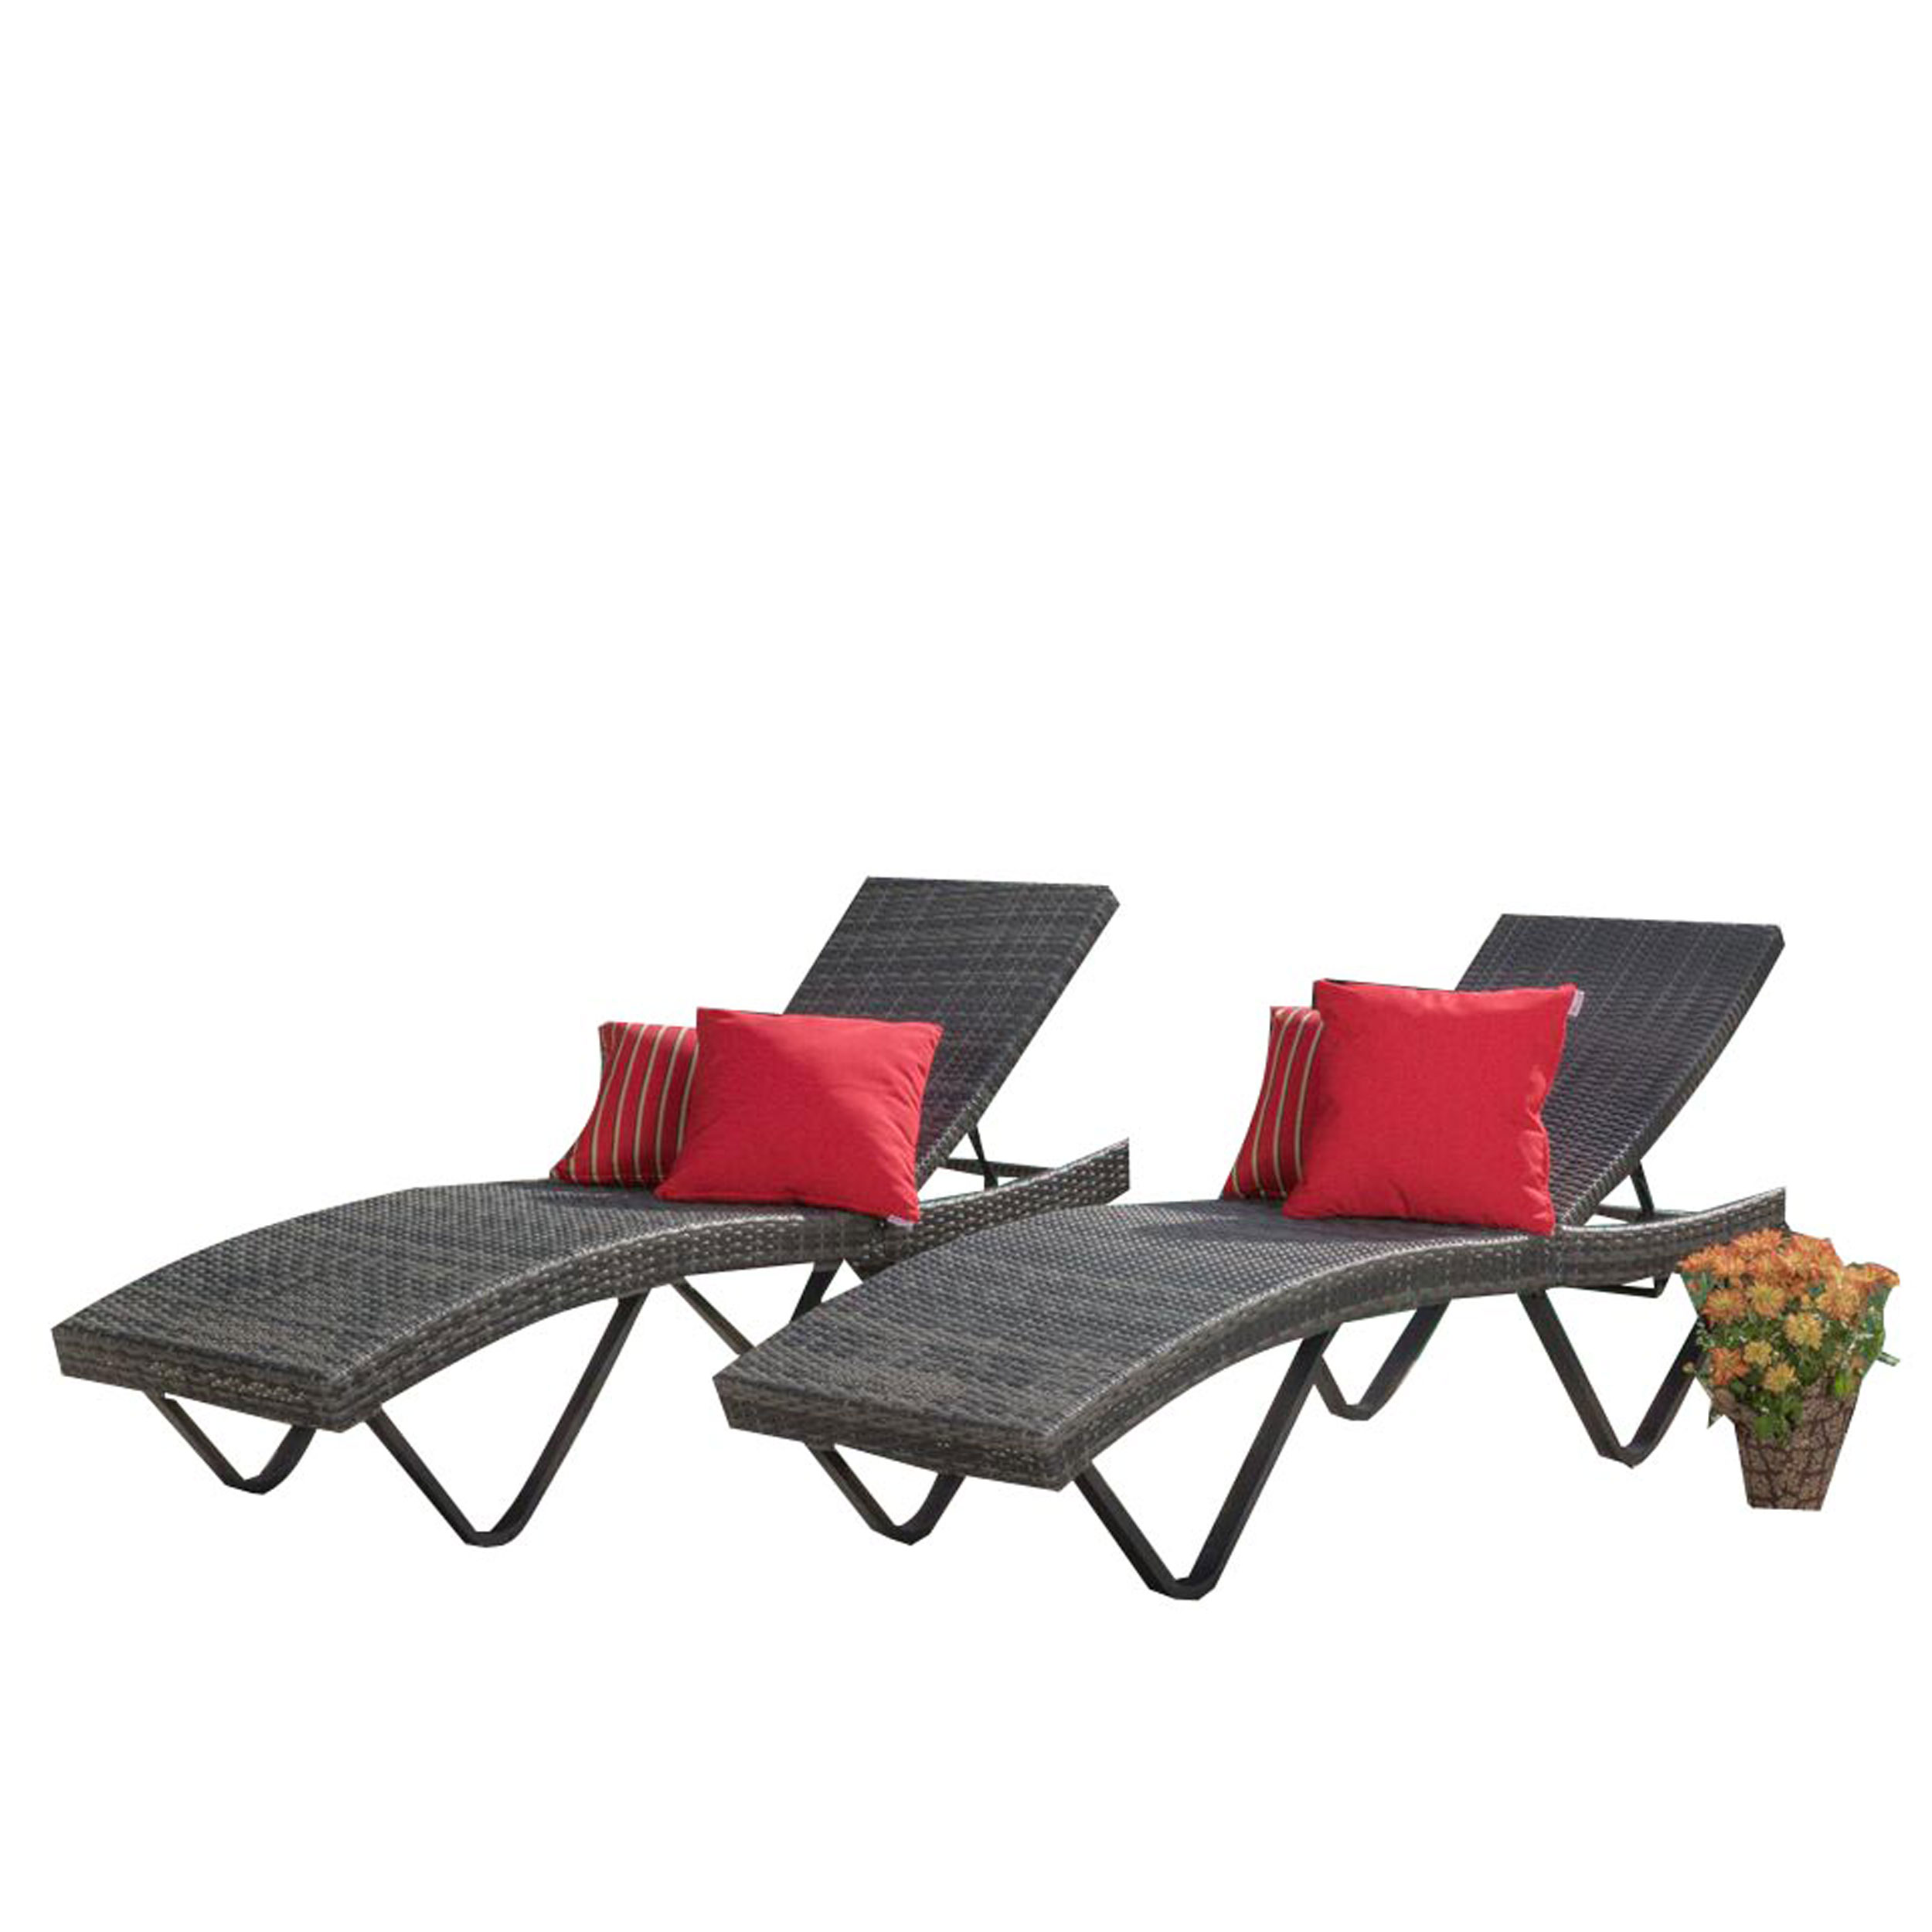 Noble House San Marin Outdoor Wicker Chaise Lounge, Set of 2, Grey by Noble House